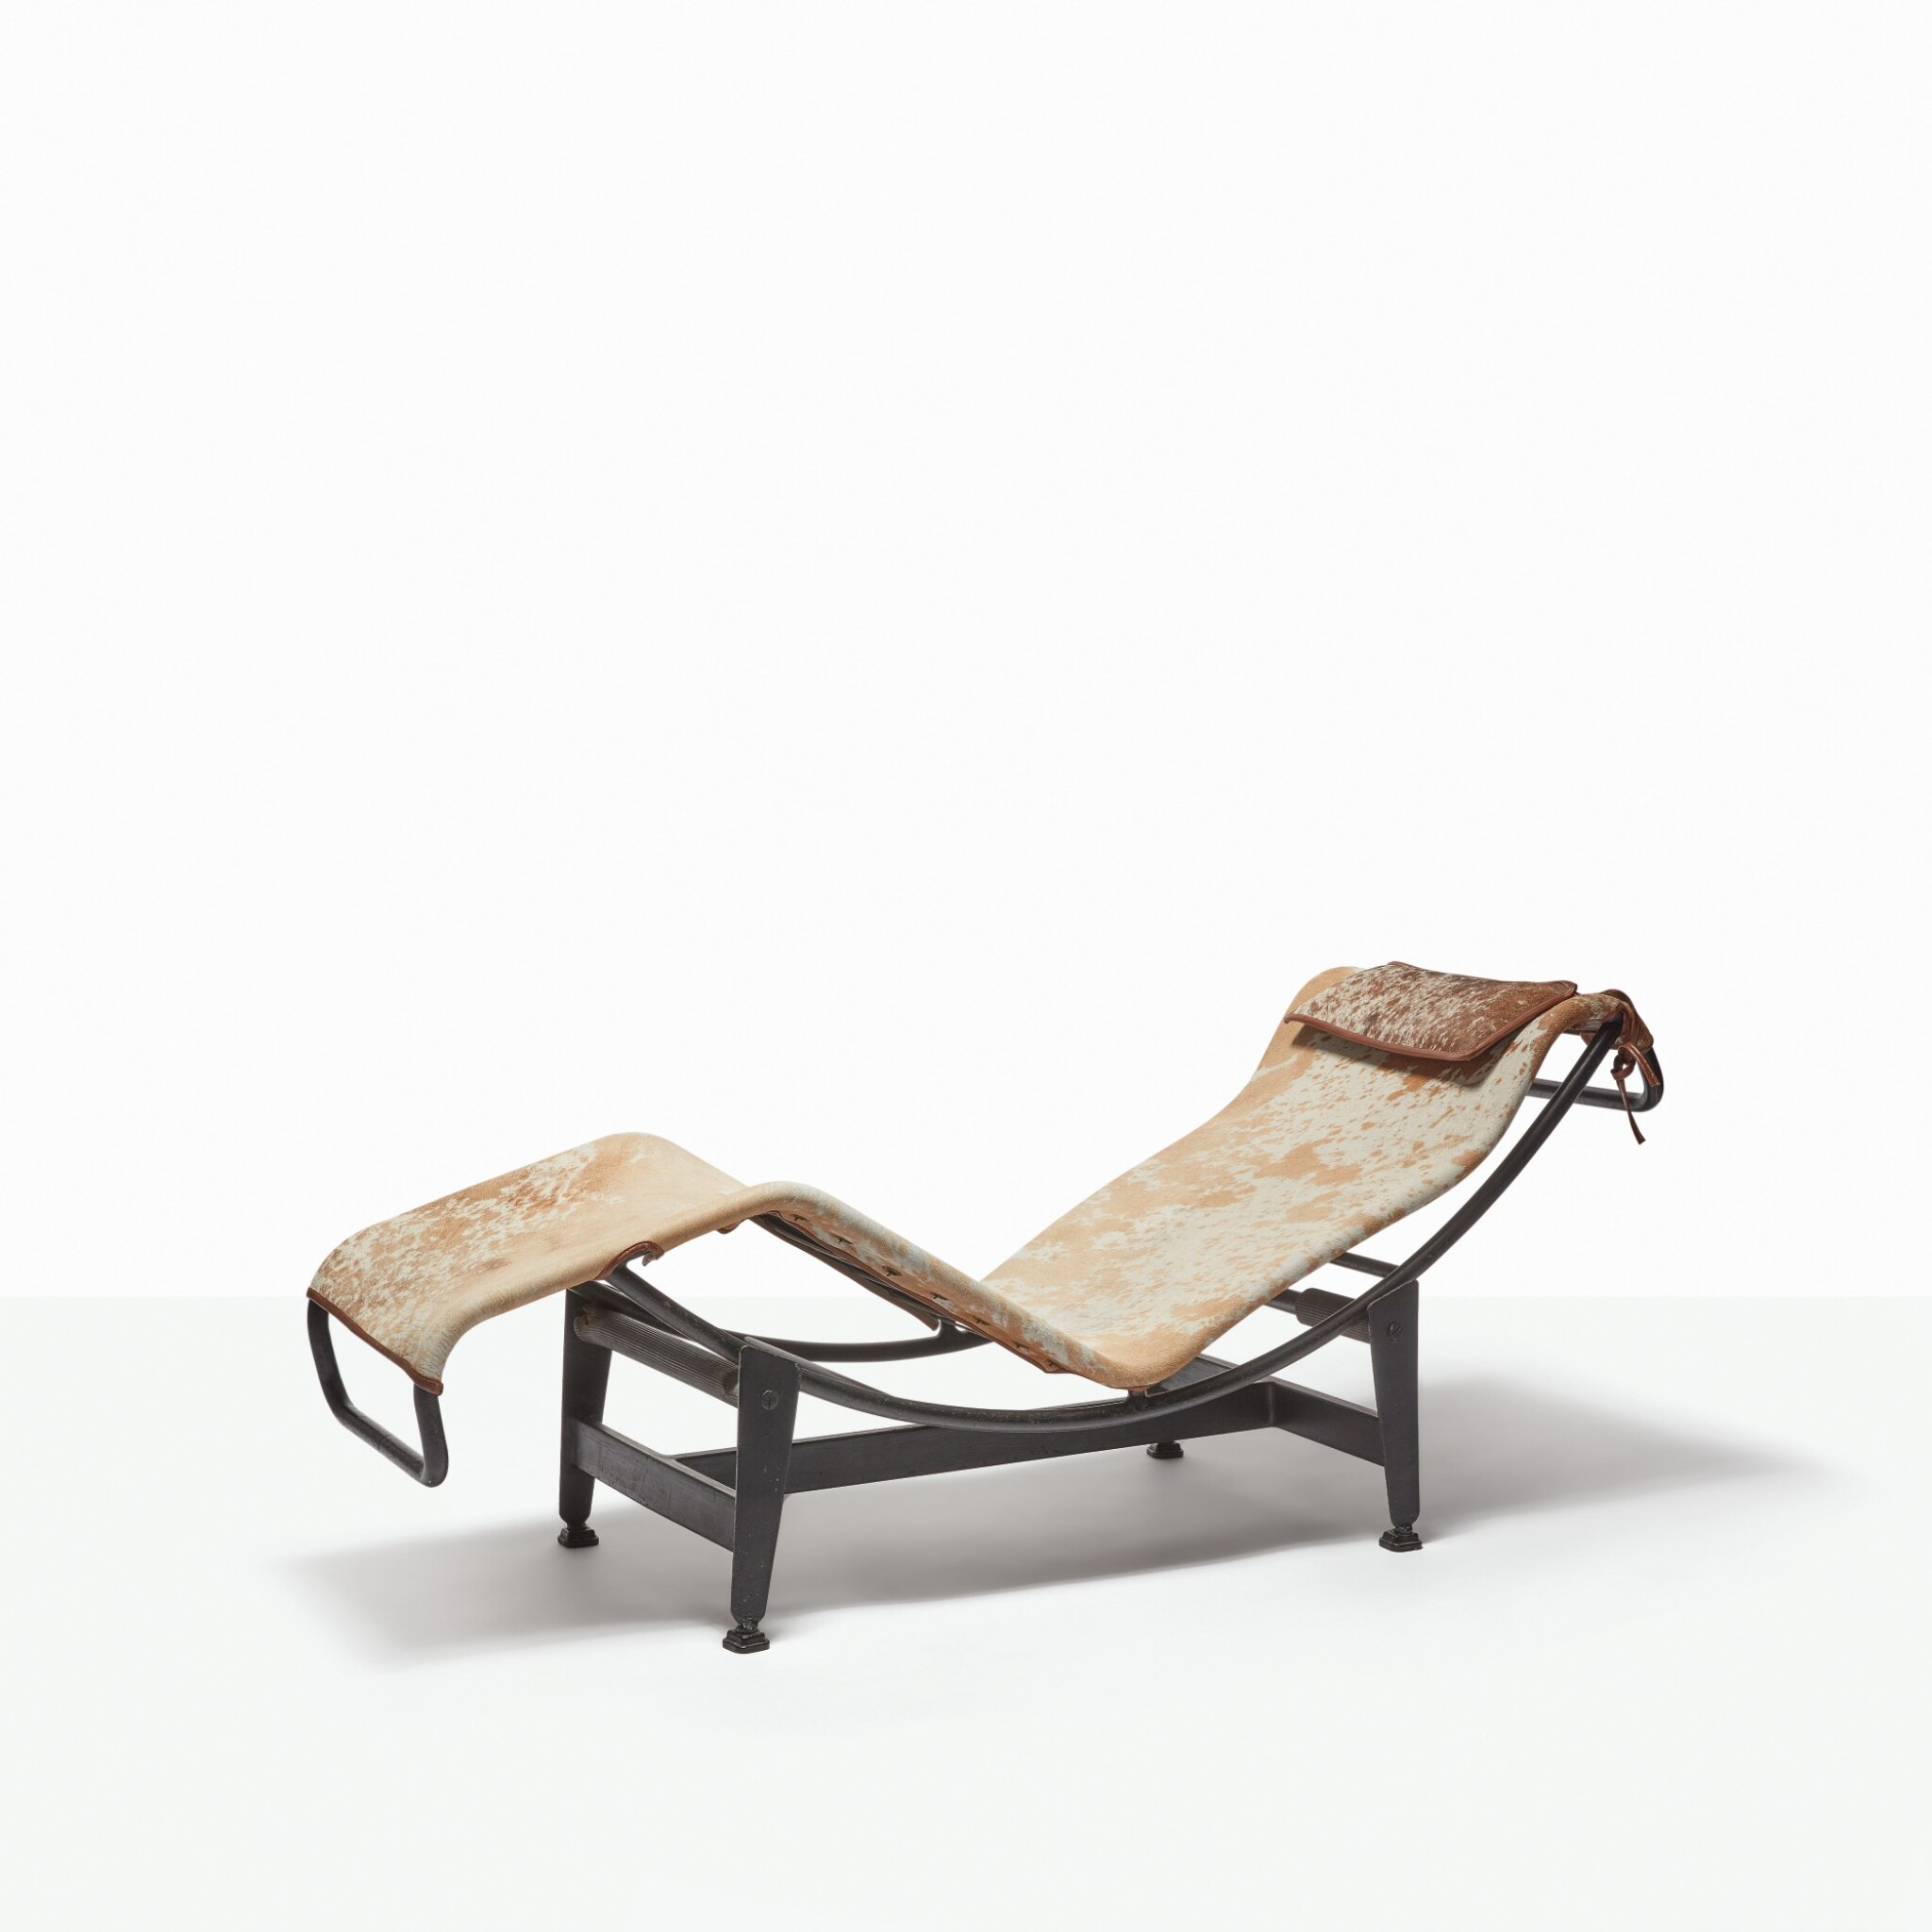 LE CORBUSIER, CHARLOTTE PERRIAND AND PIERRE JEANNERET  CHAISE